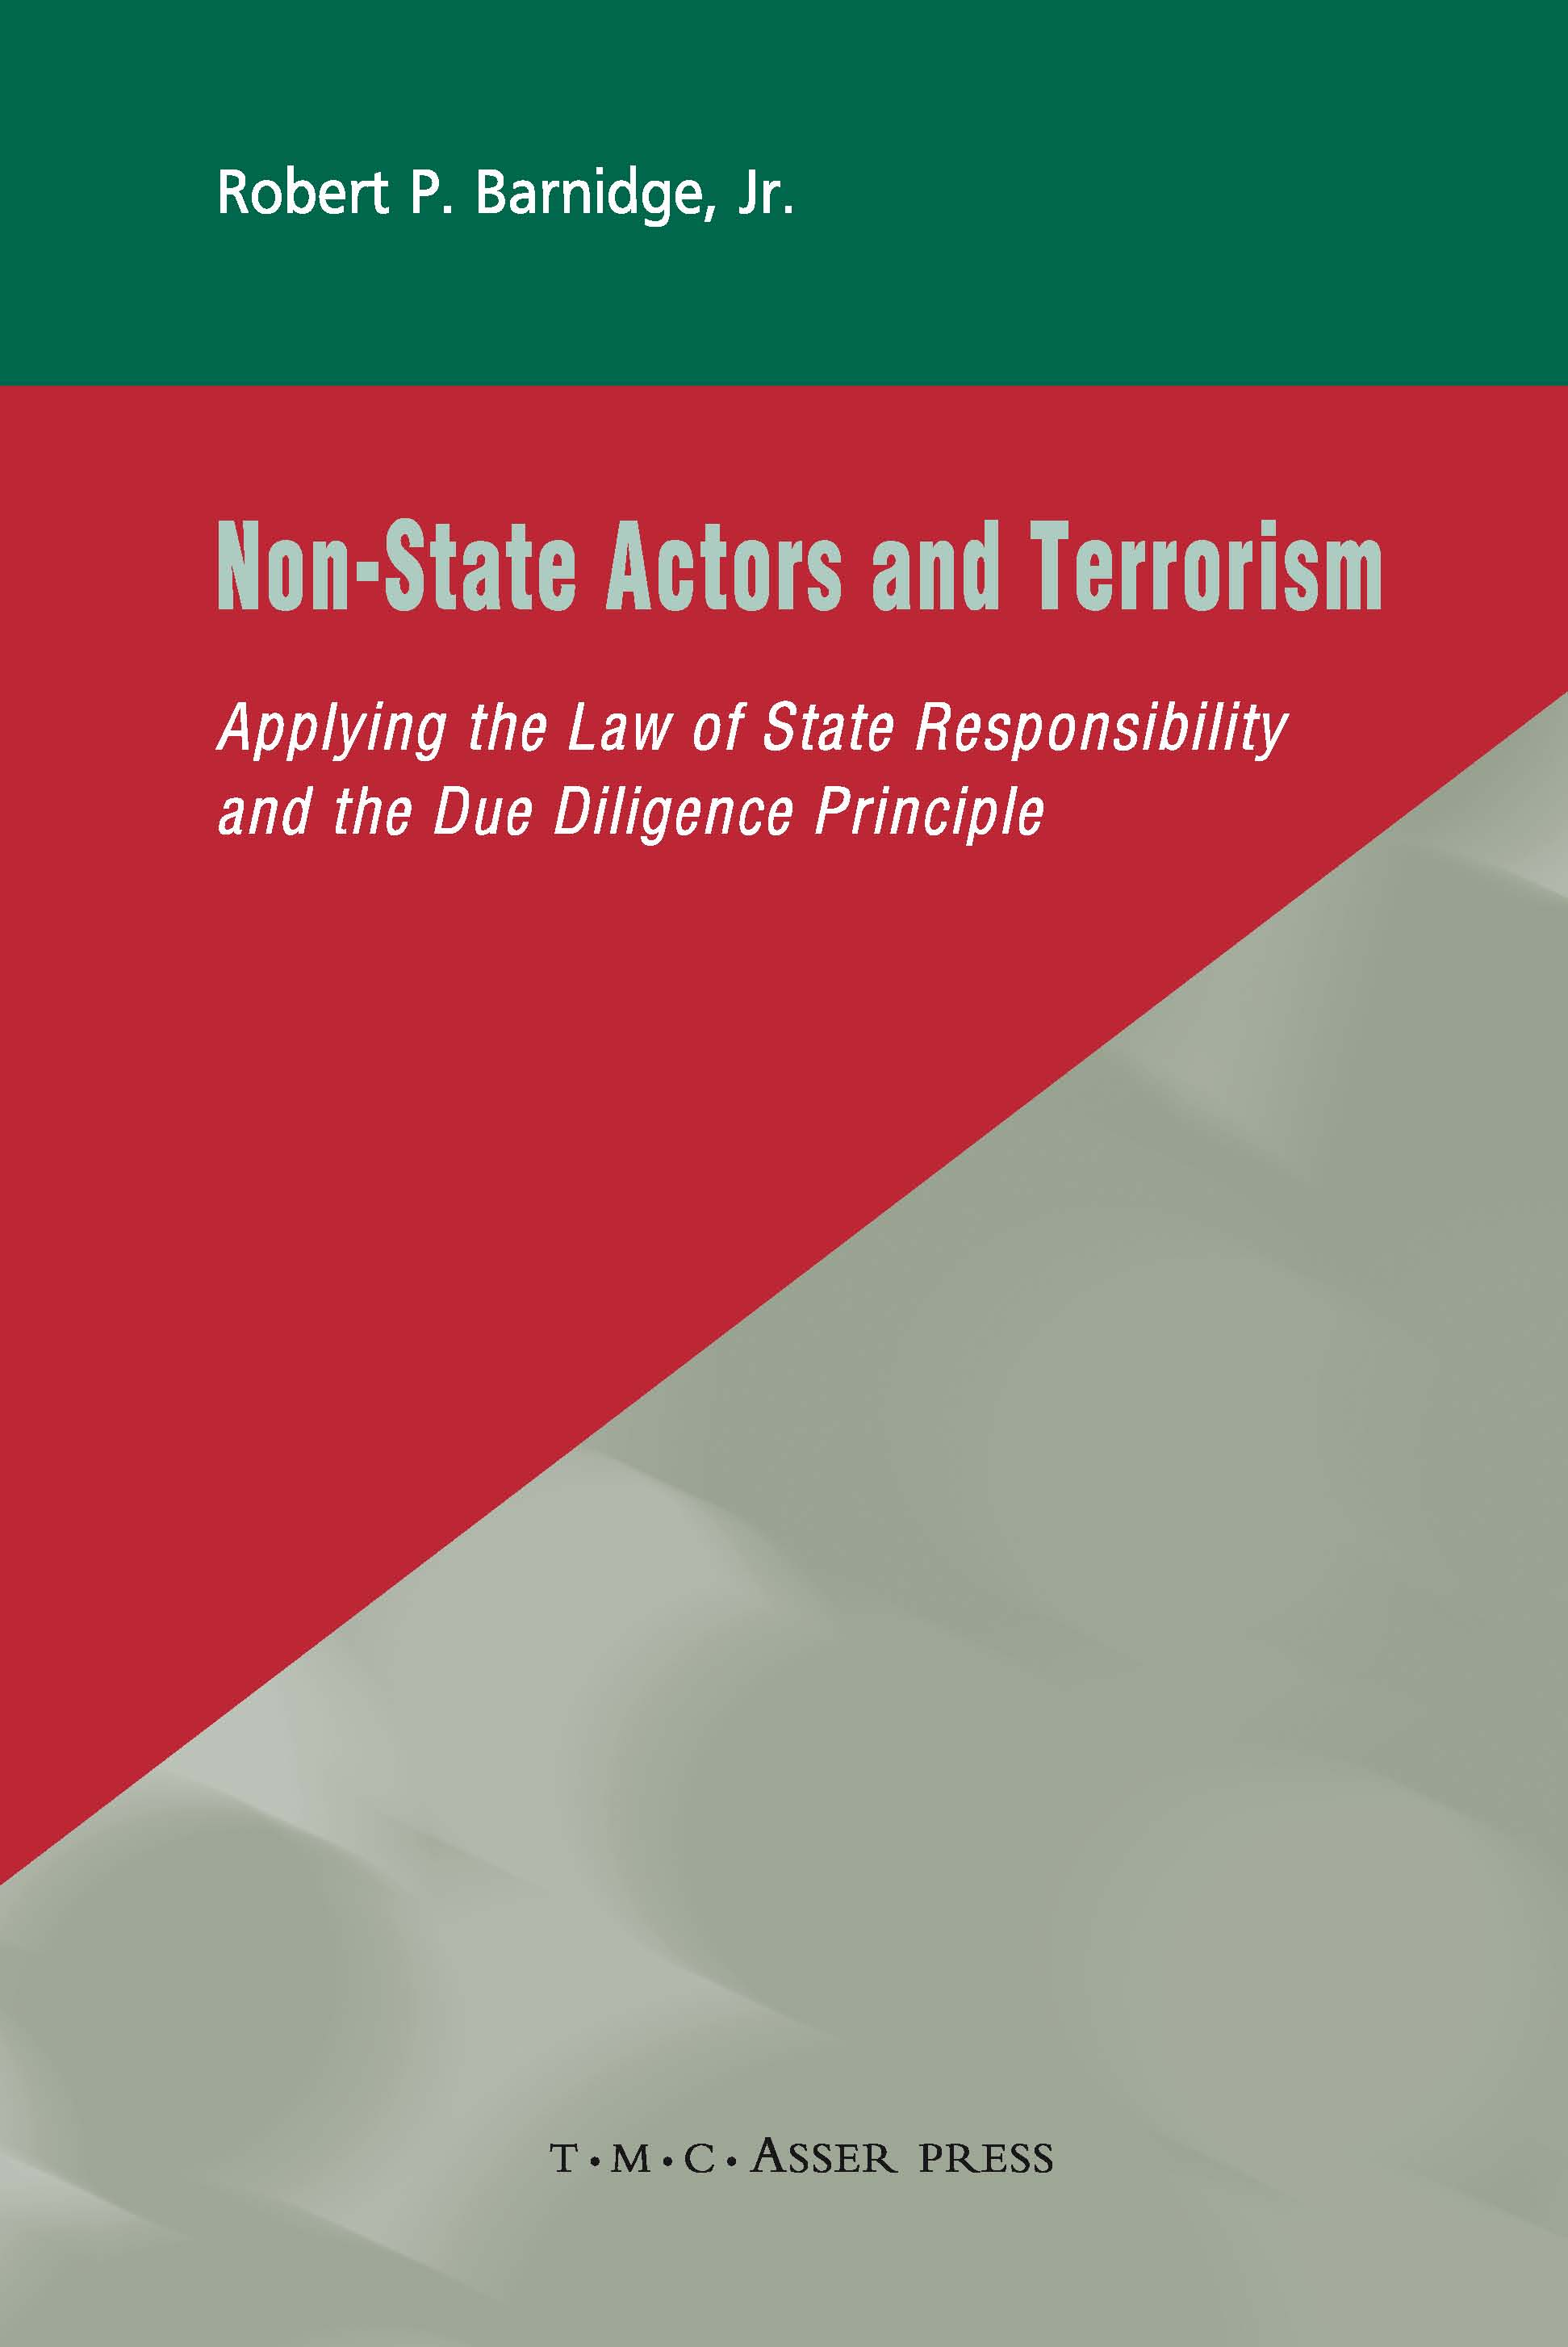 Non-State Actors and Terrorism - Applying the Law of State Responsibility and the Due Diligence Principle